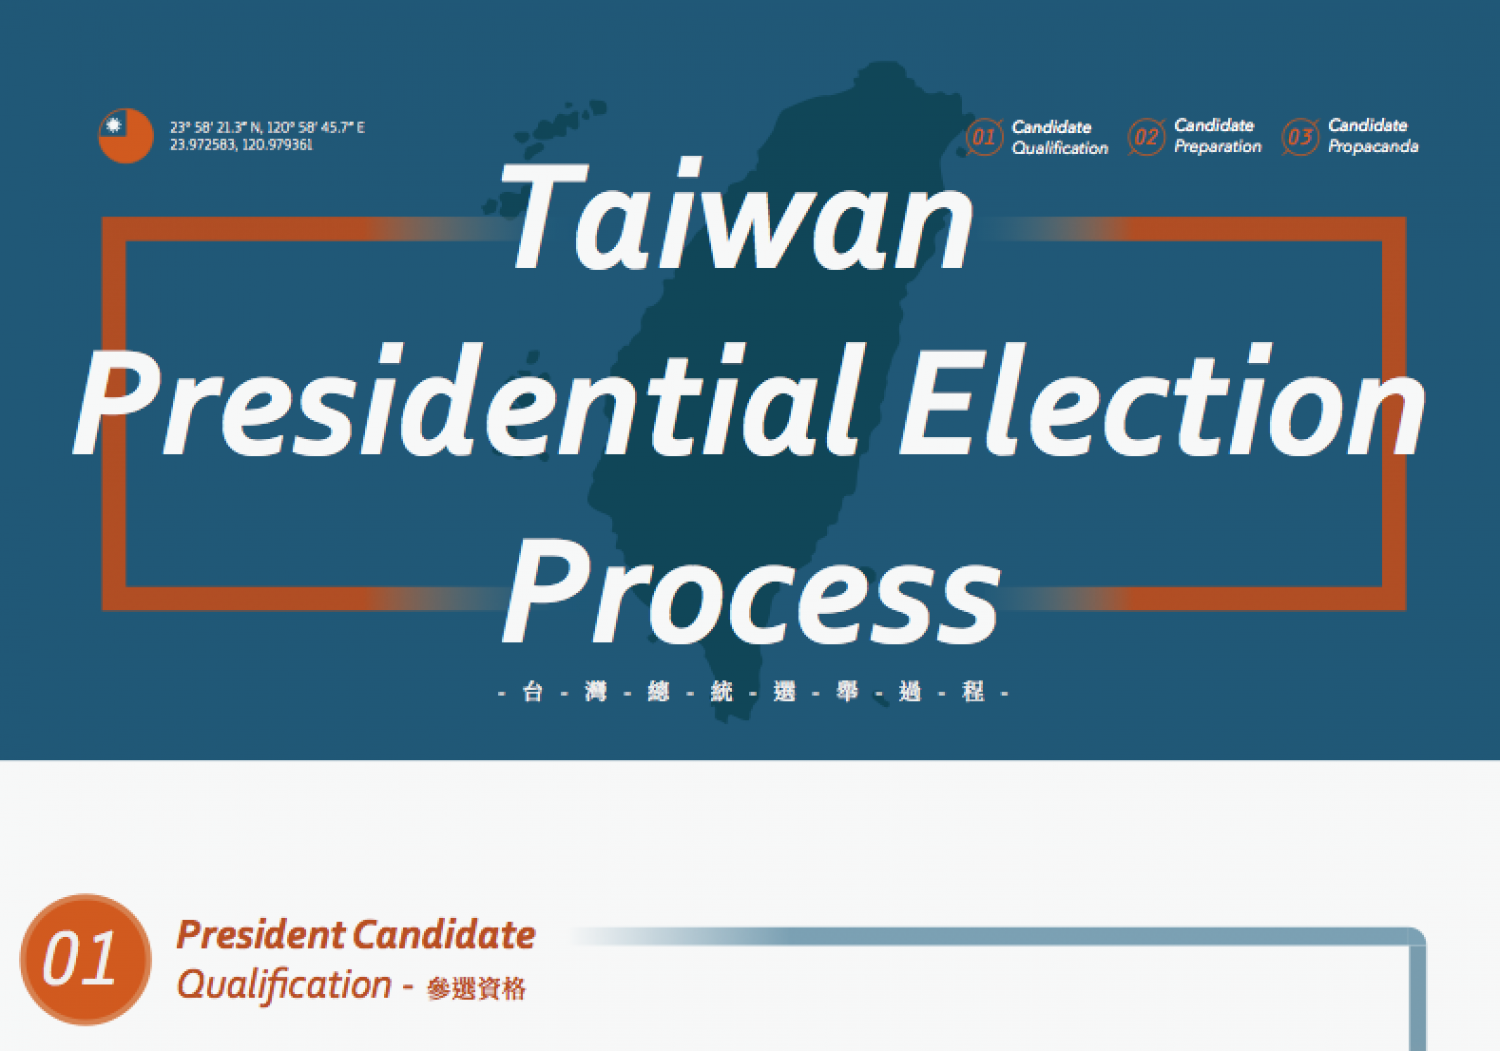 Taiwan Presidential Election Process Infographic